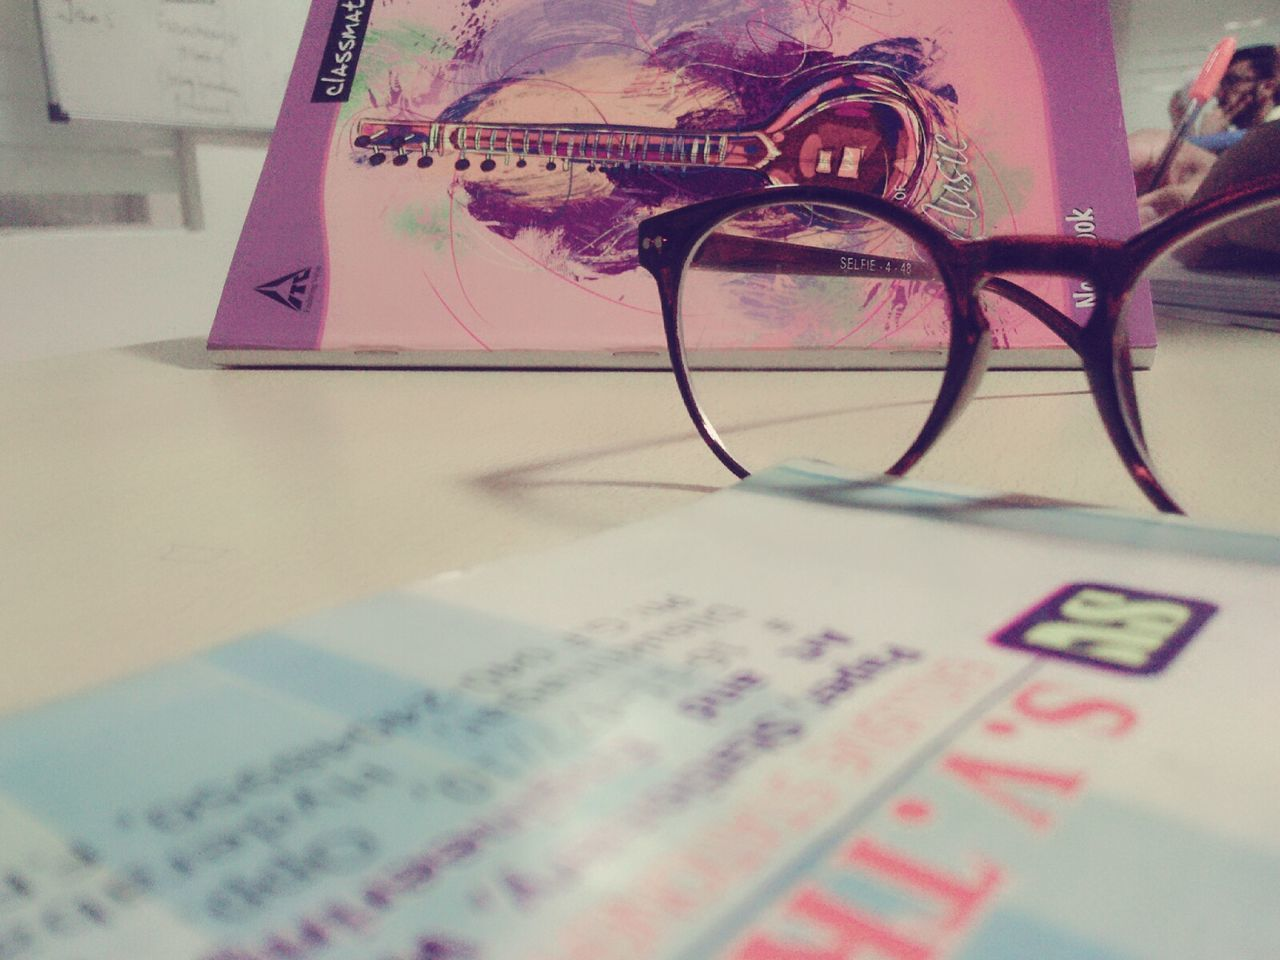 text, indoors, education, communication, book, magnifying glass, table, paper, no people, close-up, eyeglasses, day